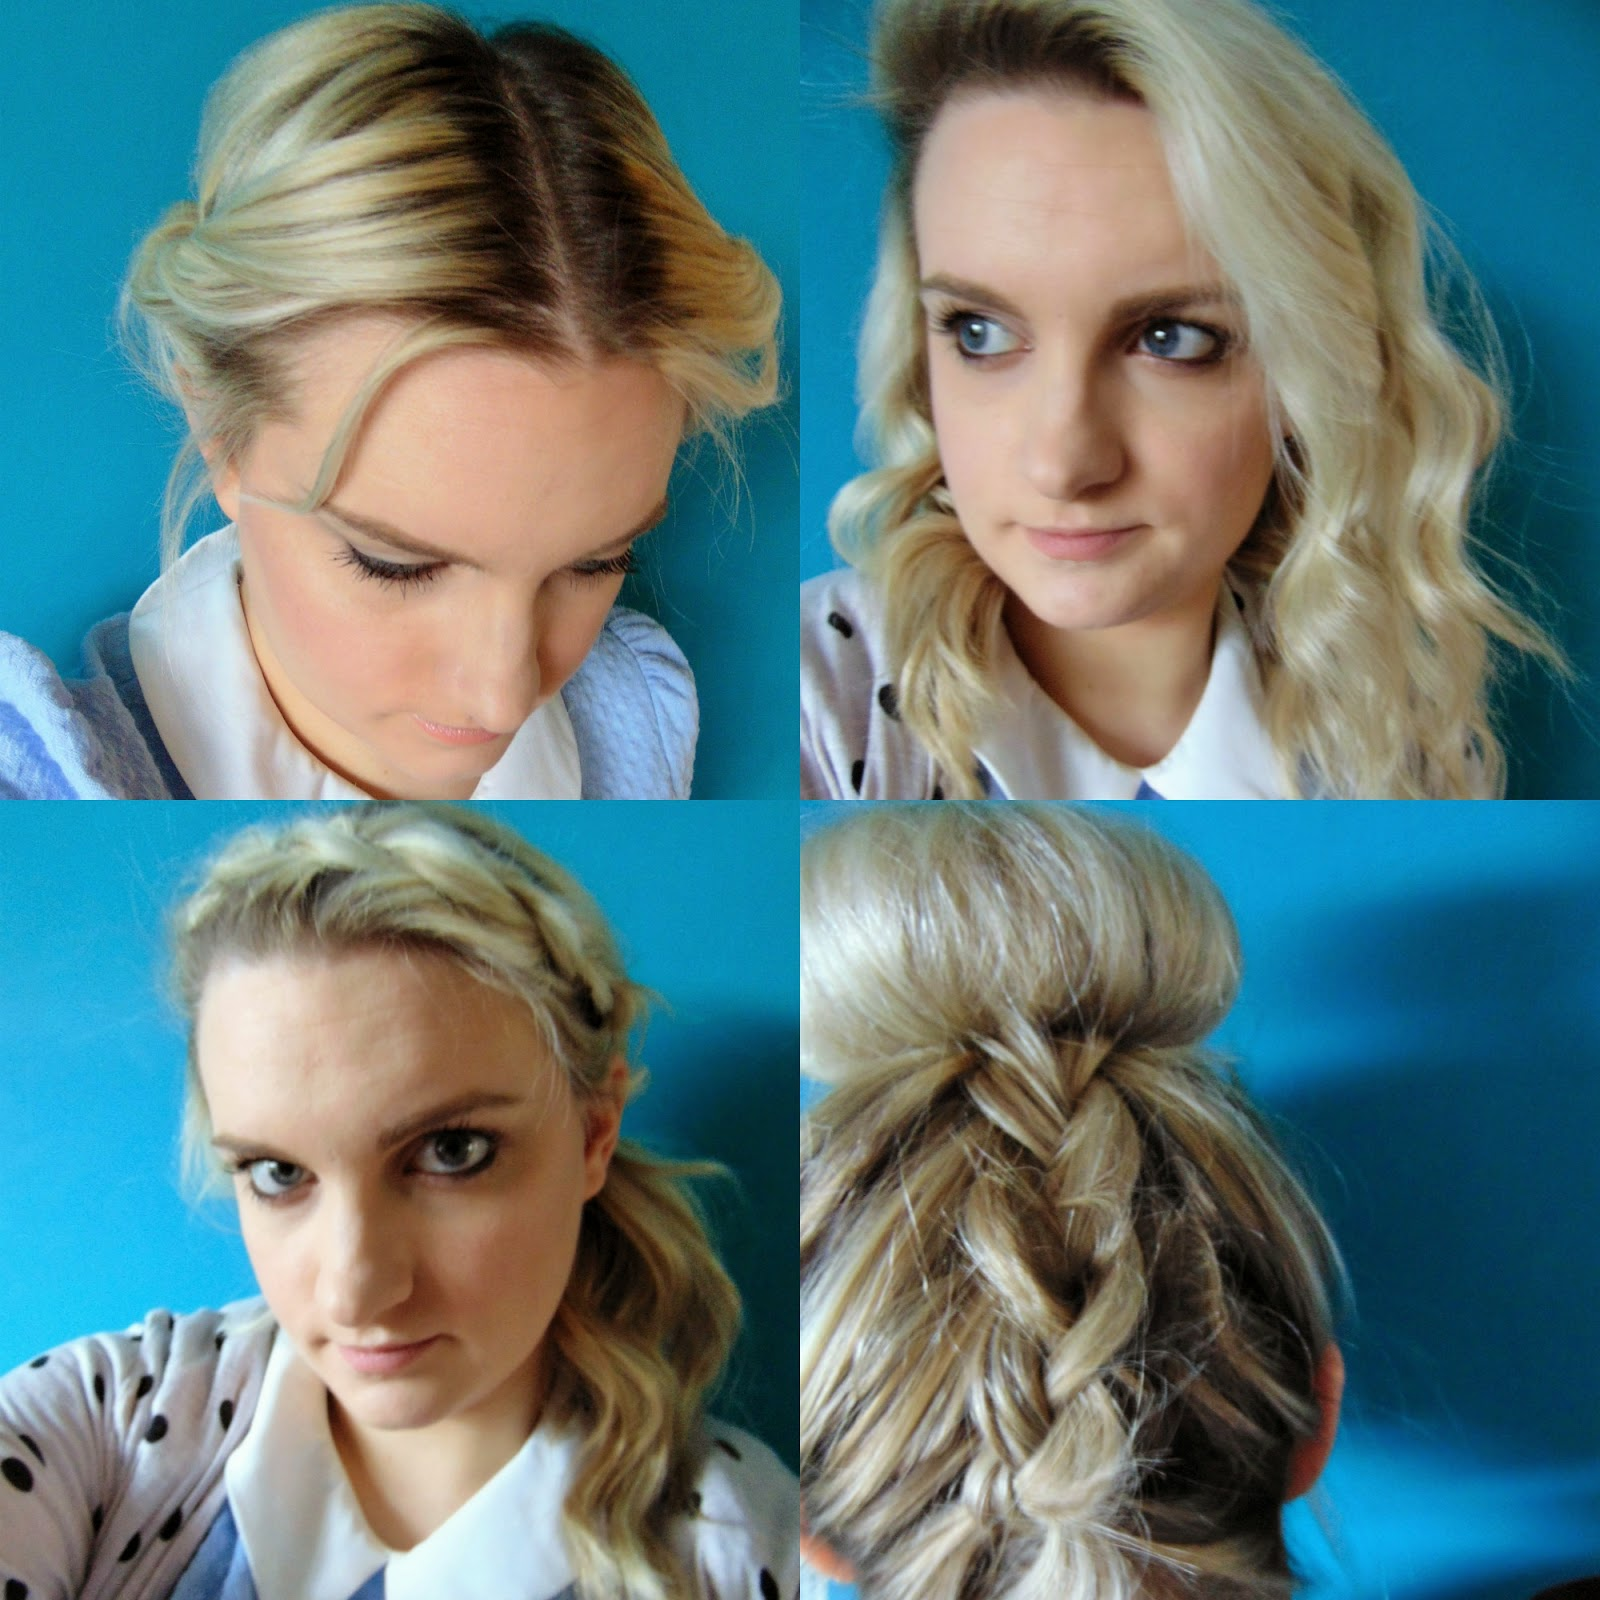 springtime hair style's tutorial braids blonde